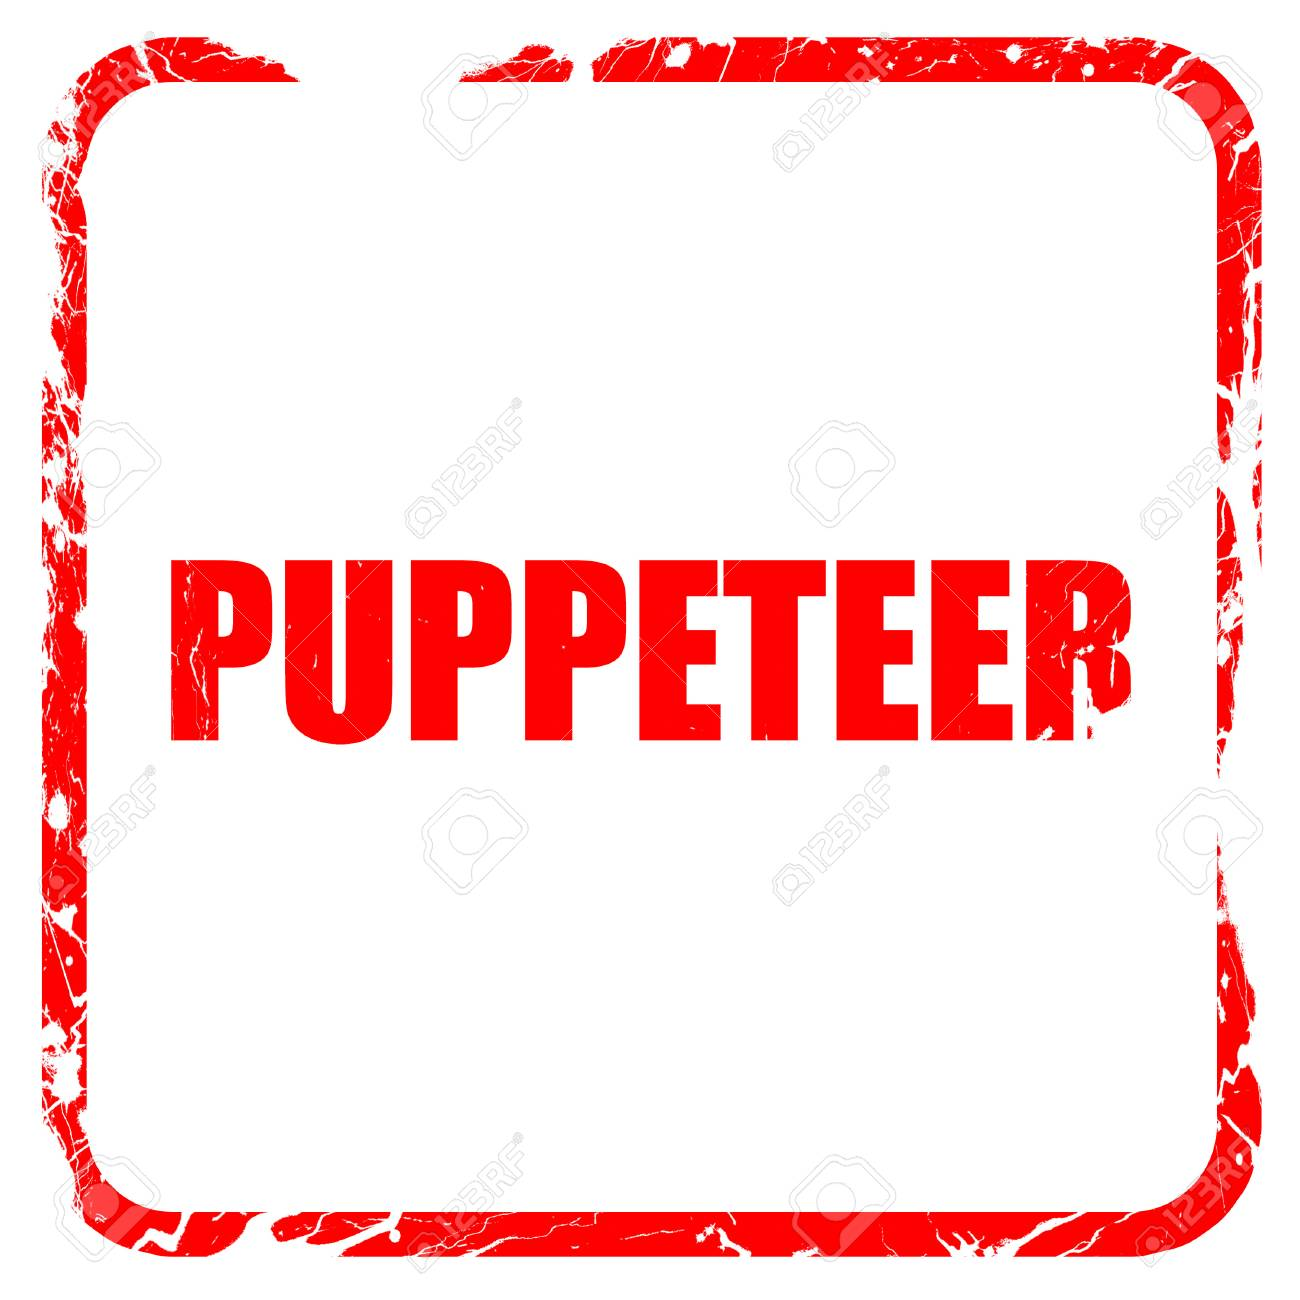 puppeteer, red rubber stamp with grunge edges